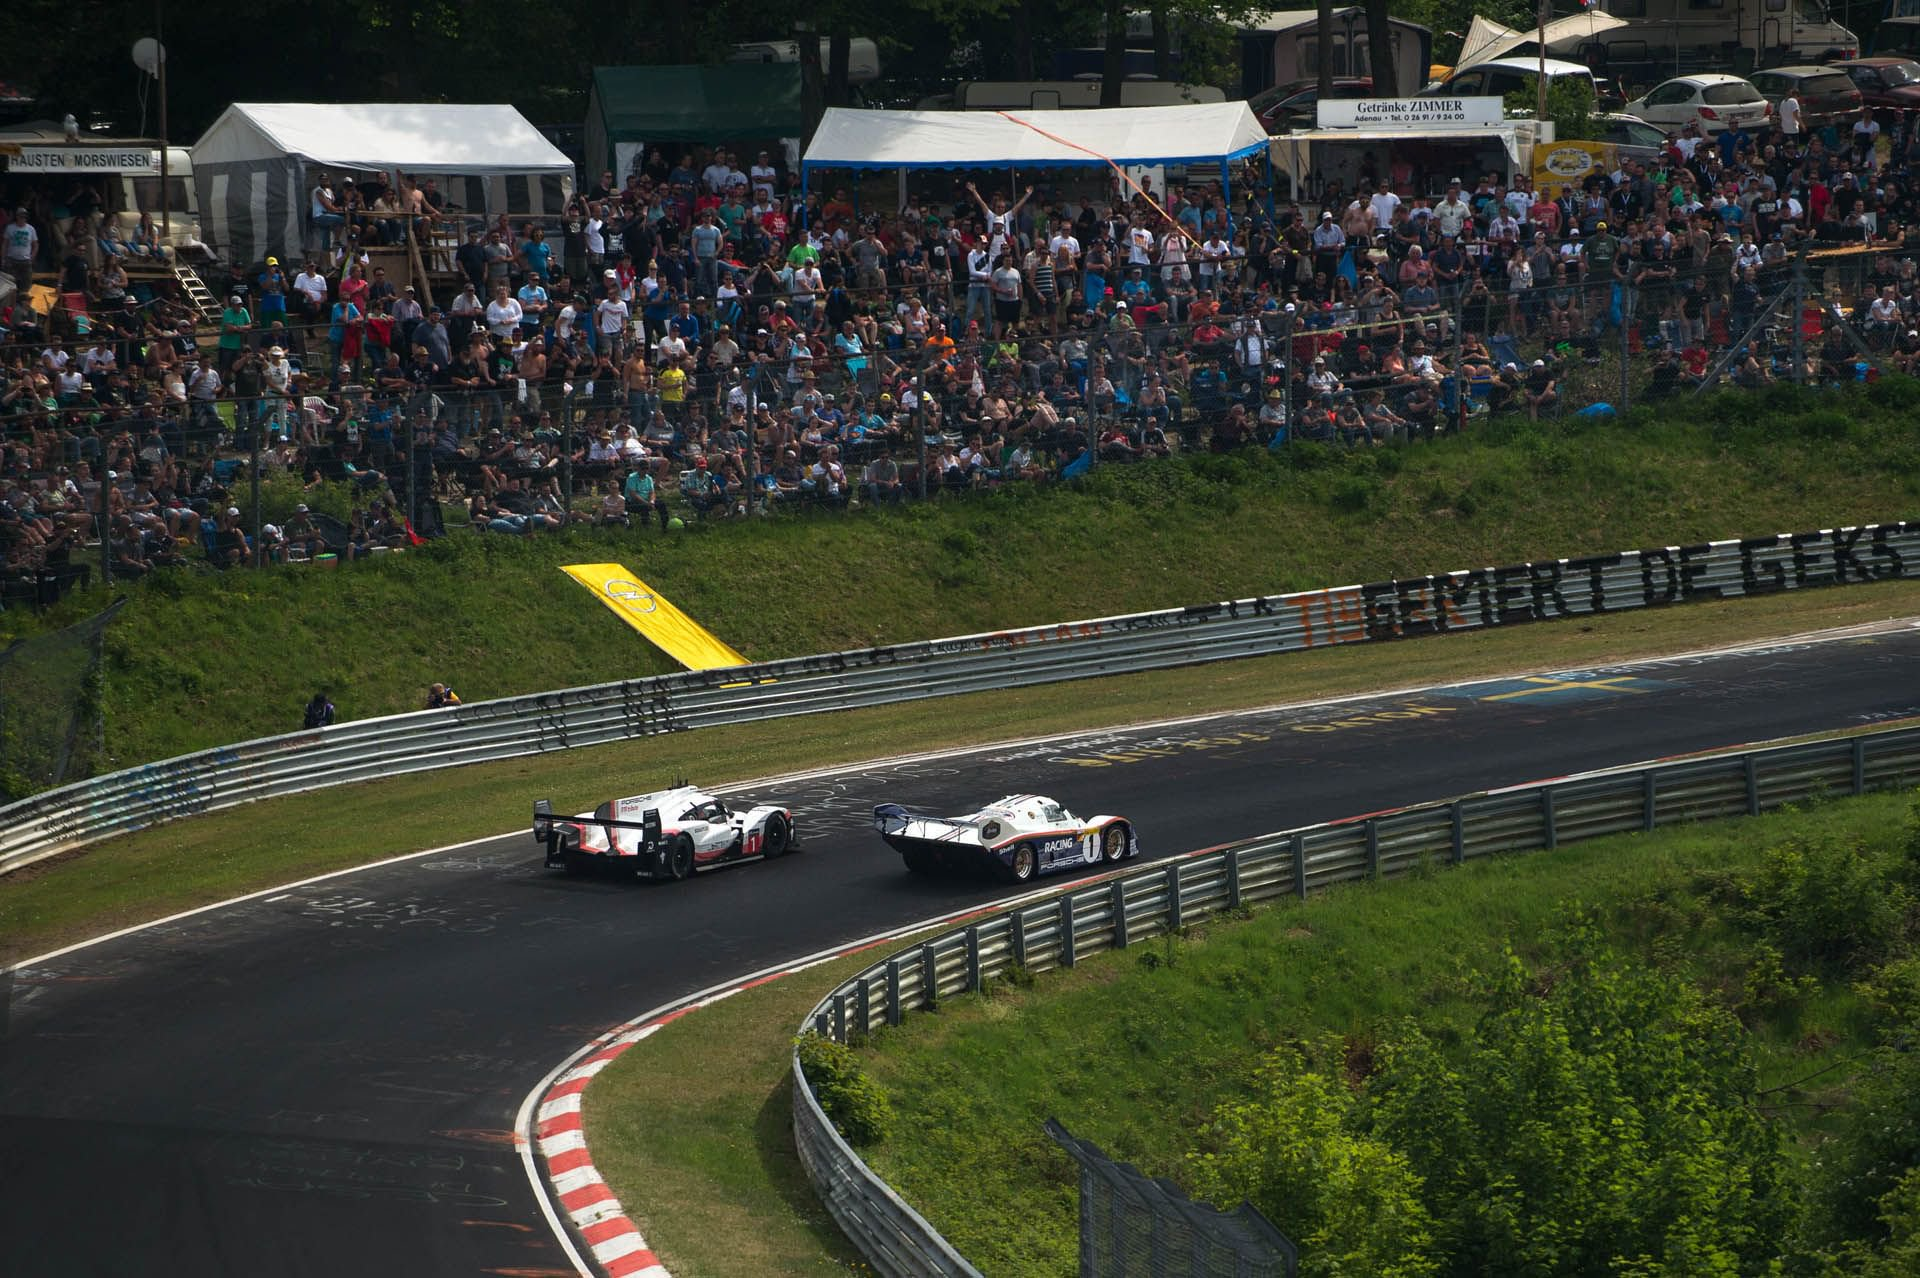 Porsche 919 Hybrid Evo and 956 at Nurburgring (11)